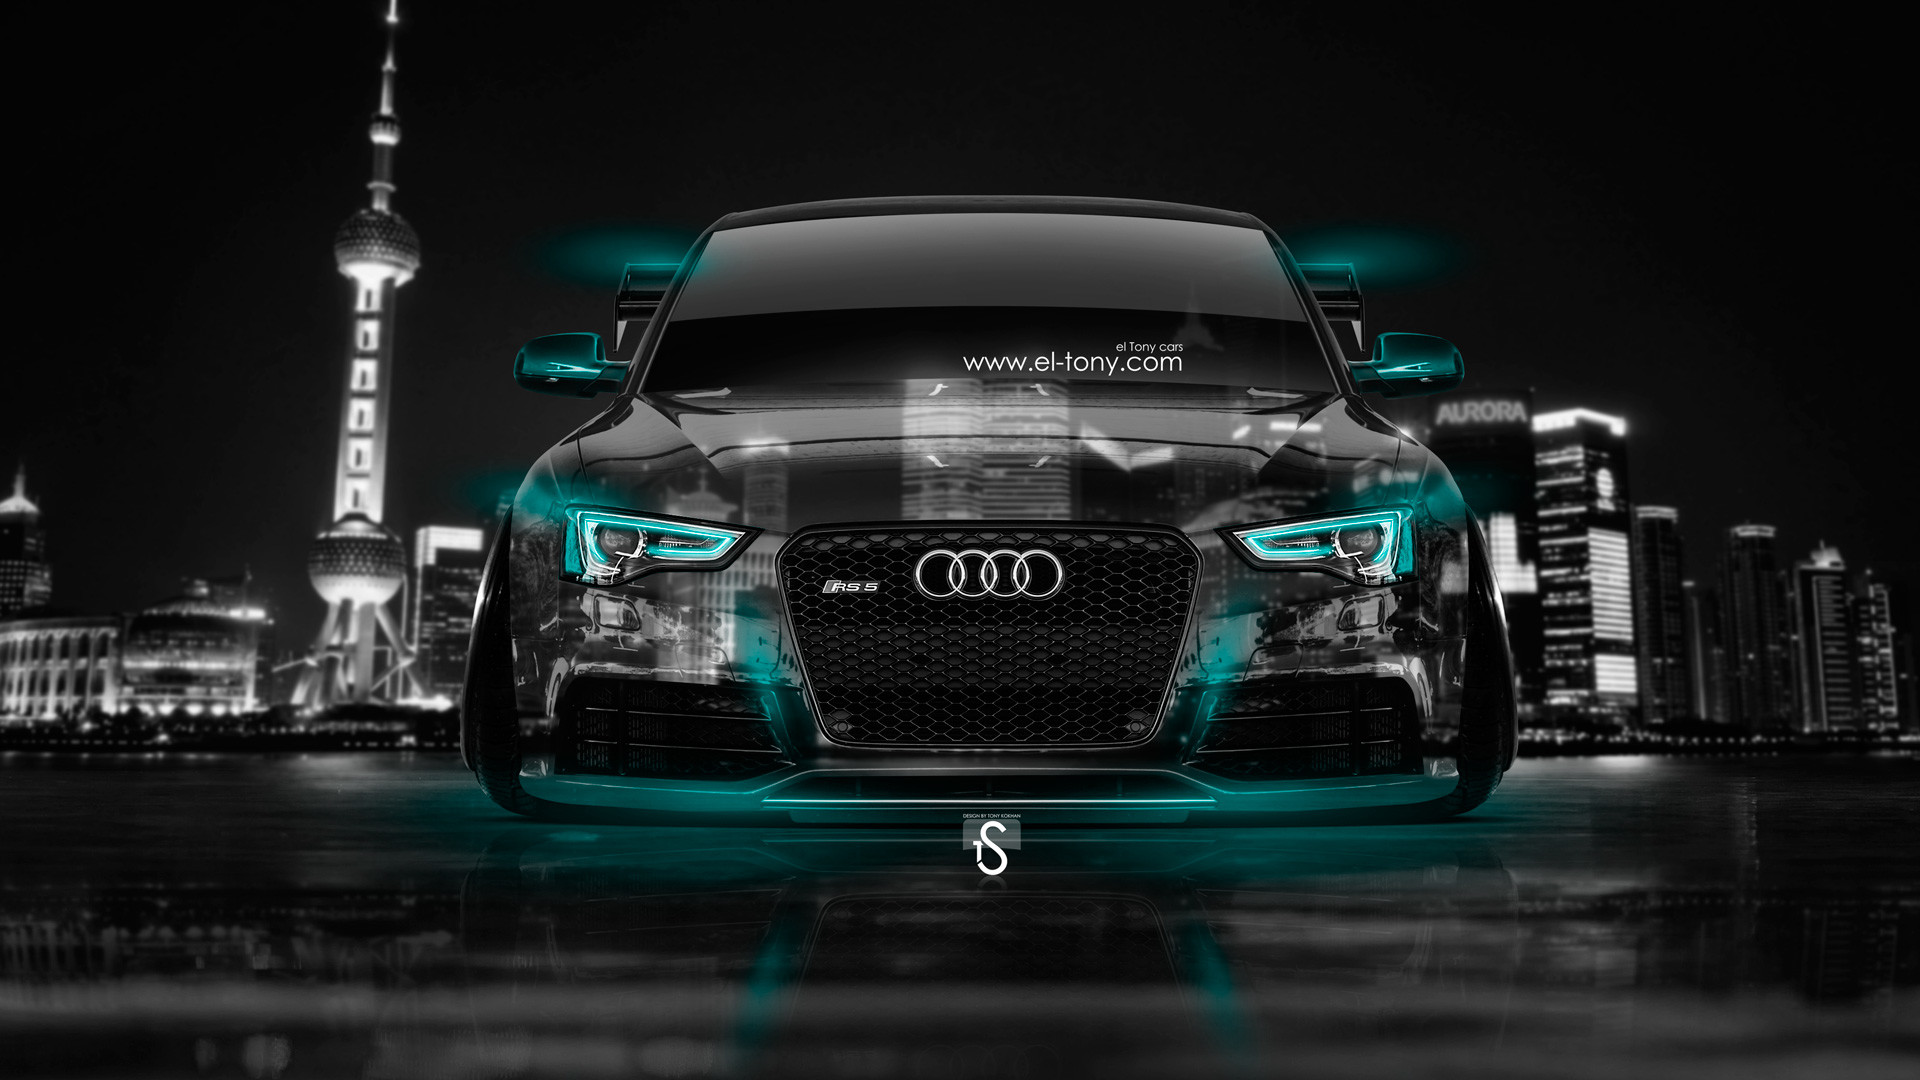 1920x1080 Desktop Backgrounds: Audi RS5, By Billie Mignone, 1920x1080 Px